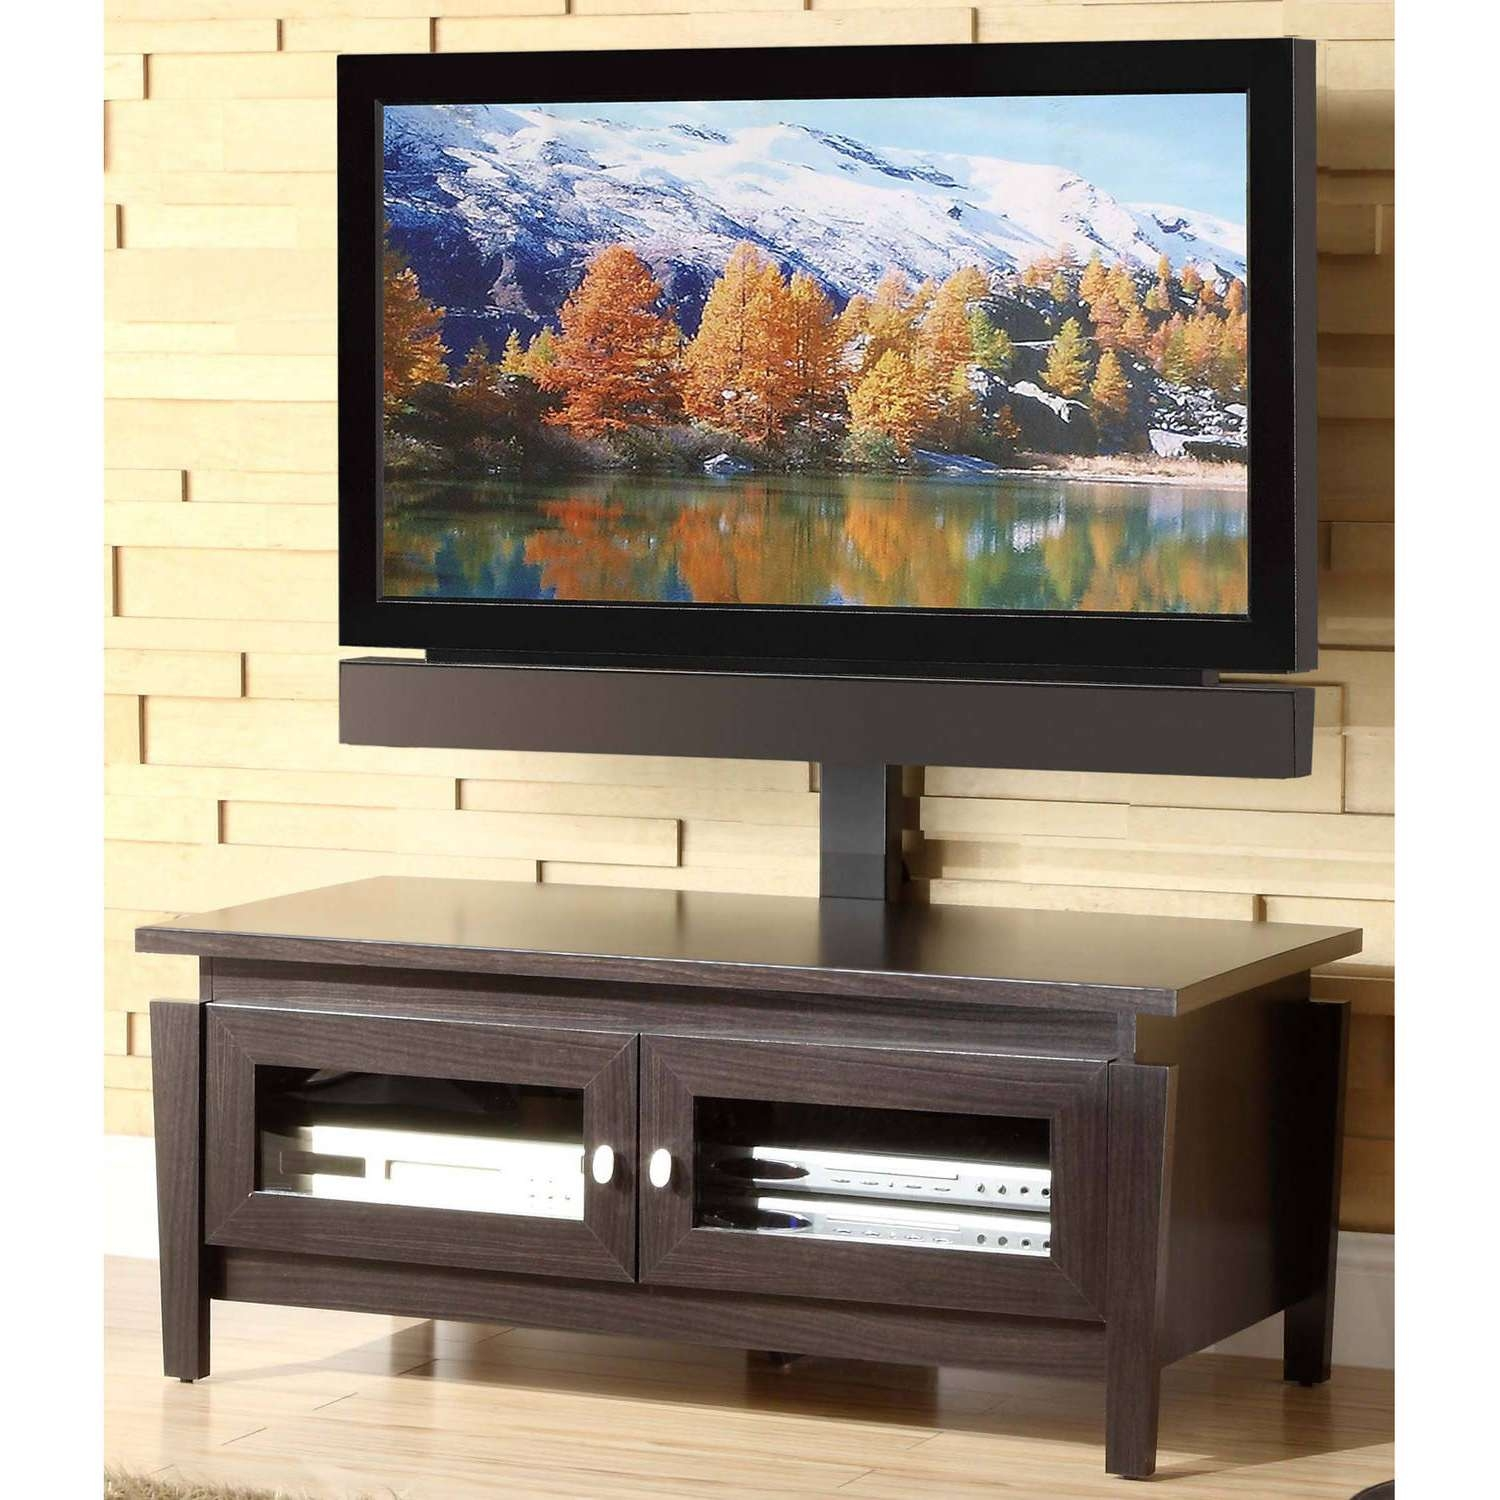 Tv Stand : Da1De92Aaf0E 1 Marvelous Tv Stand With Pictures Design With Cordoba Tv Stands (View 13 of 15)